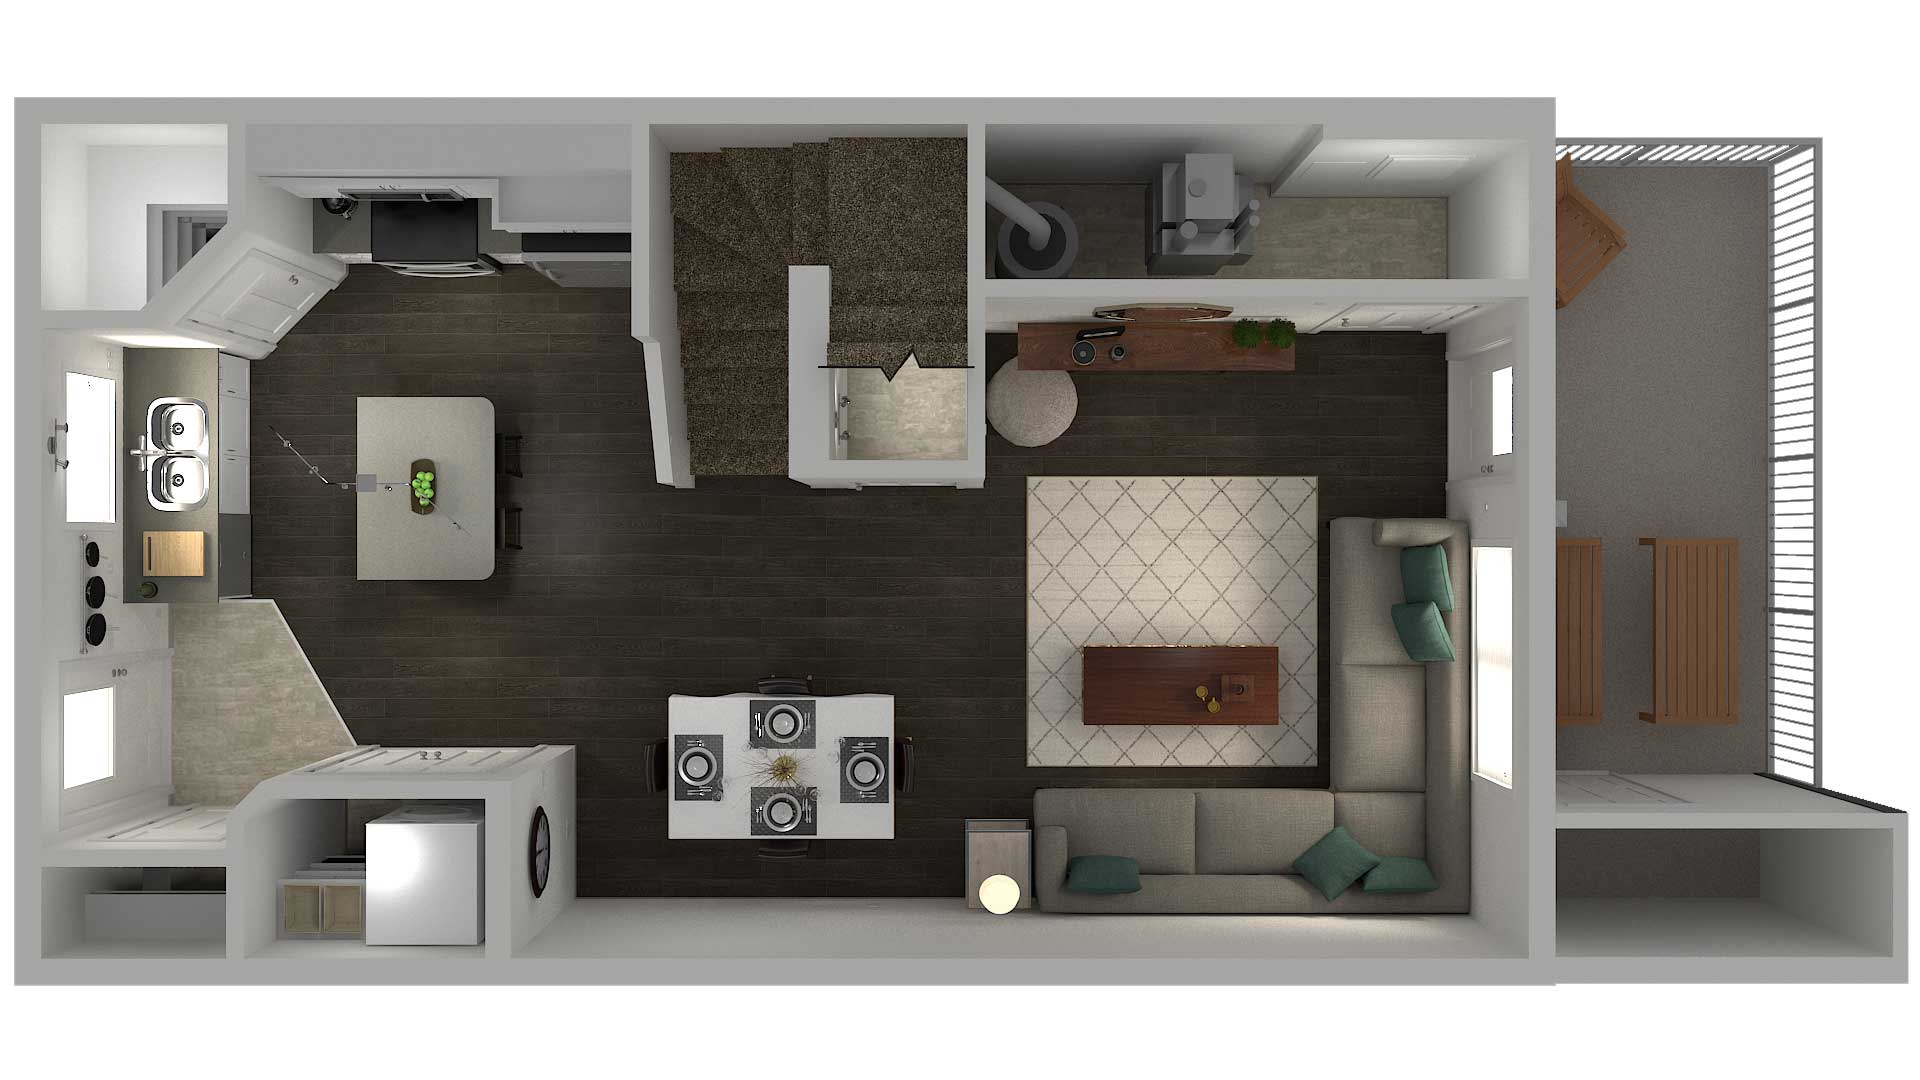 Cory Vistas 3 Bedroom Townhouse Floor Plan